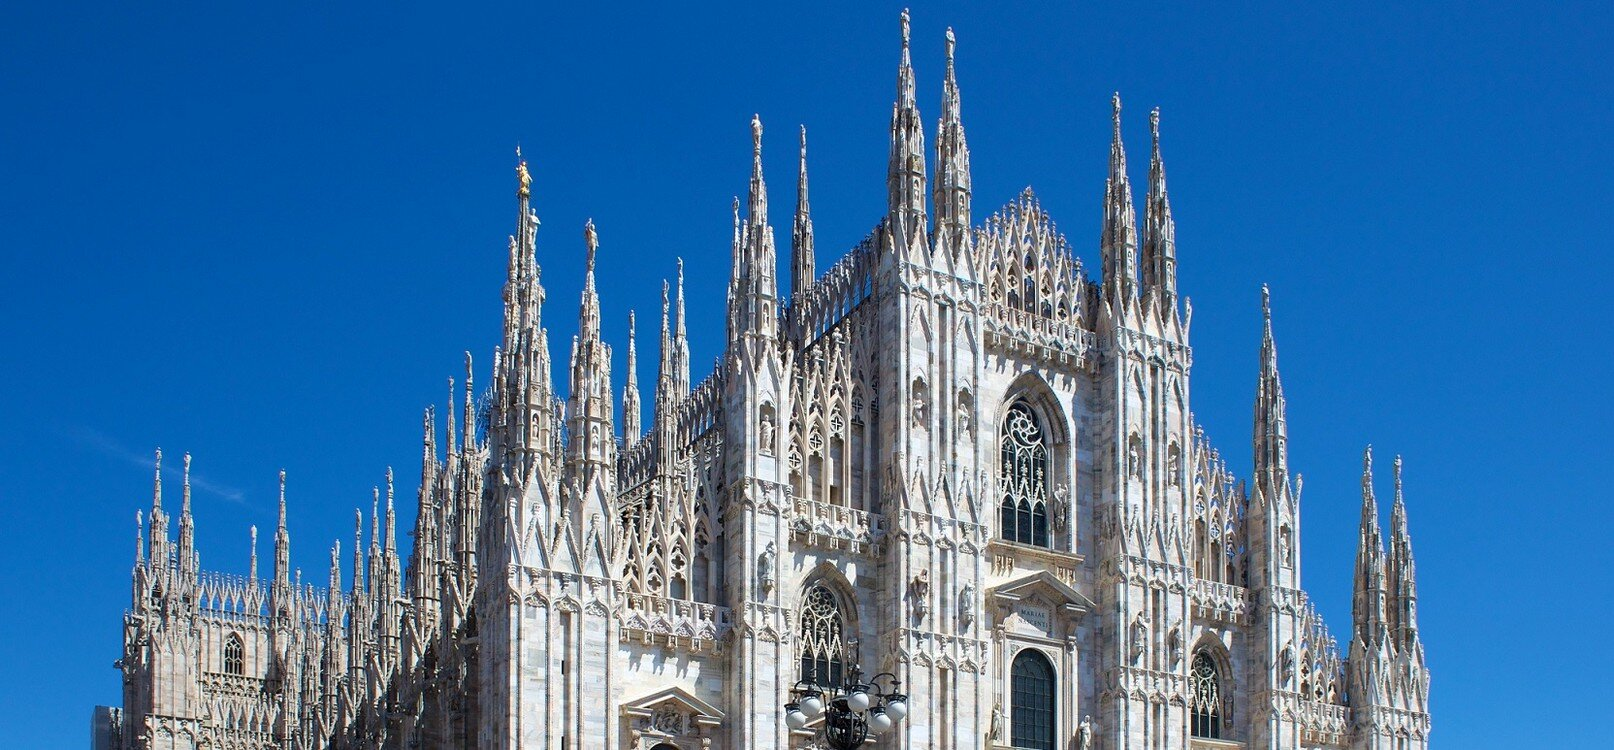 Milan_Cathedral_from_Piazza_del_Duomo1.jpg